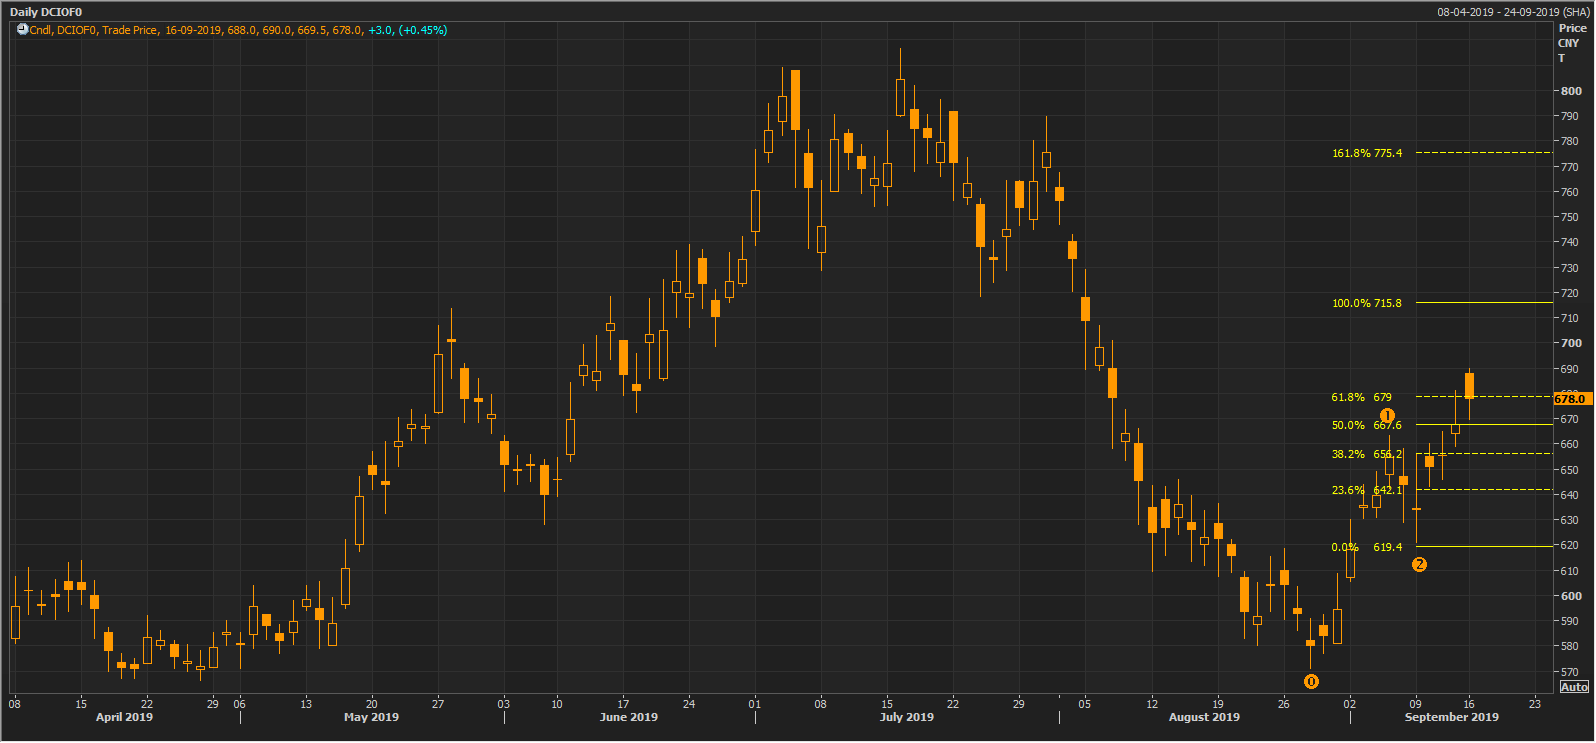 Daily Charts DCIOFO (Source Thomson Reuters)